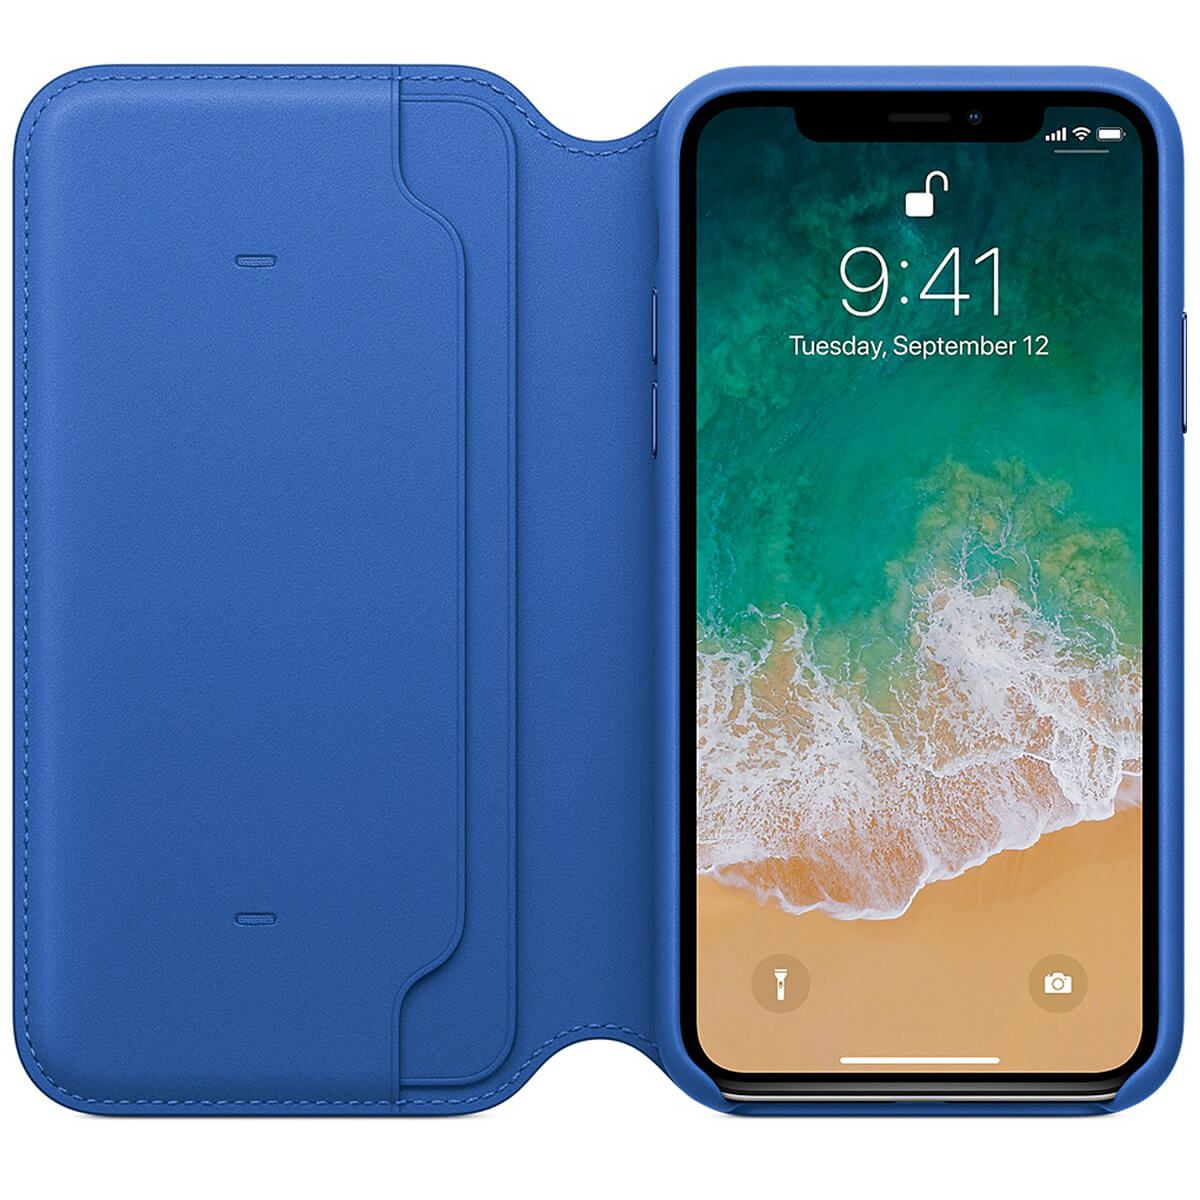 Genuine-Leather-Folio-Flip-Wallet-Case-Cover-For-Apple-iPhone-X-8-7-6S-6-Plus thumbnail 13